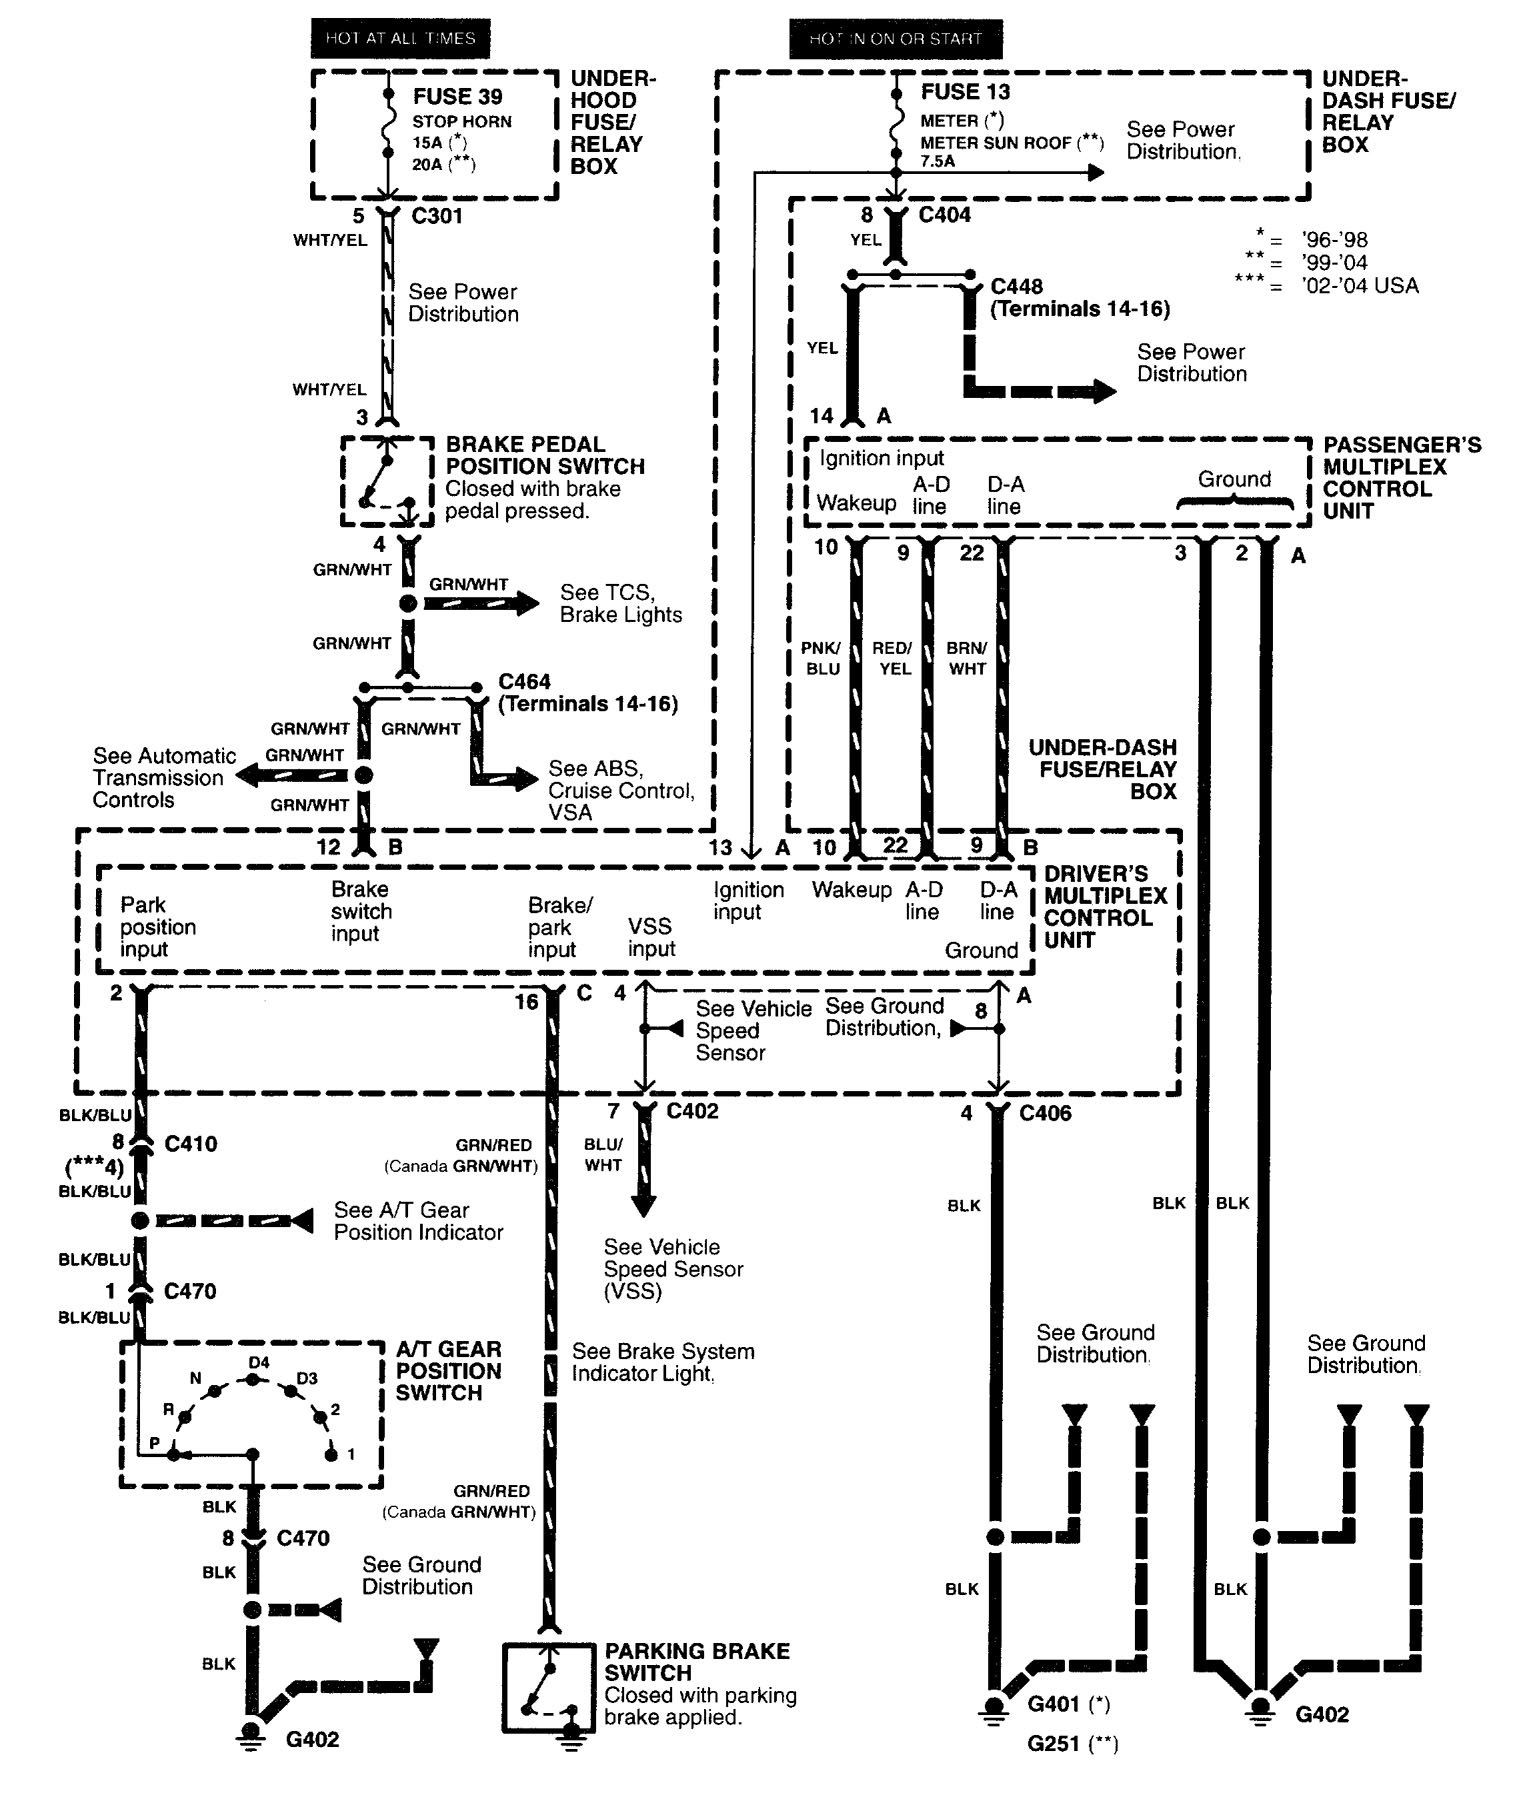 Wiring Diagram For Skoda Octavia Schematics Diagrams Roomster Example Electrical U2022 Rh Olkha Co